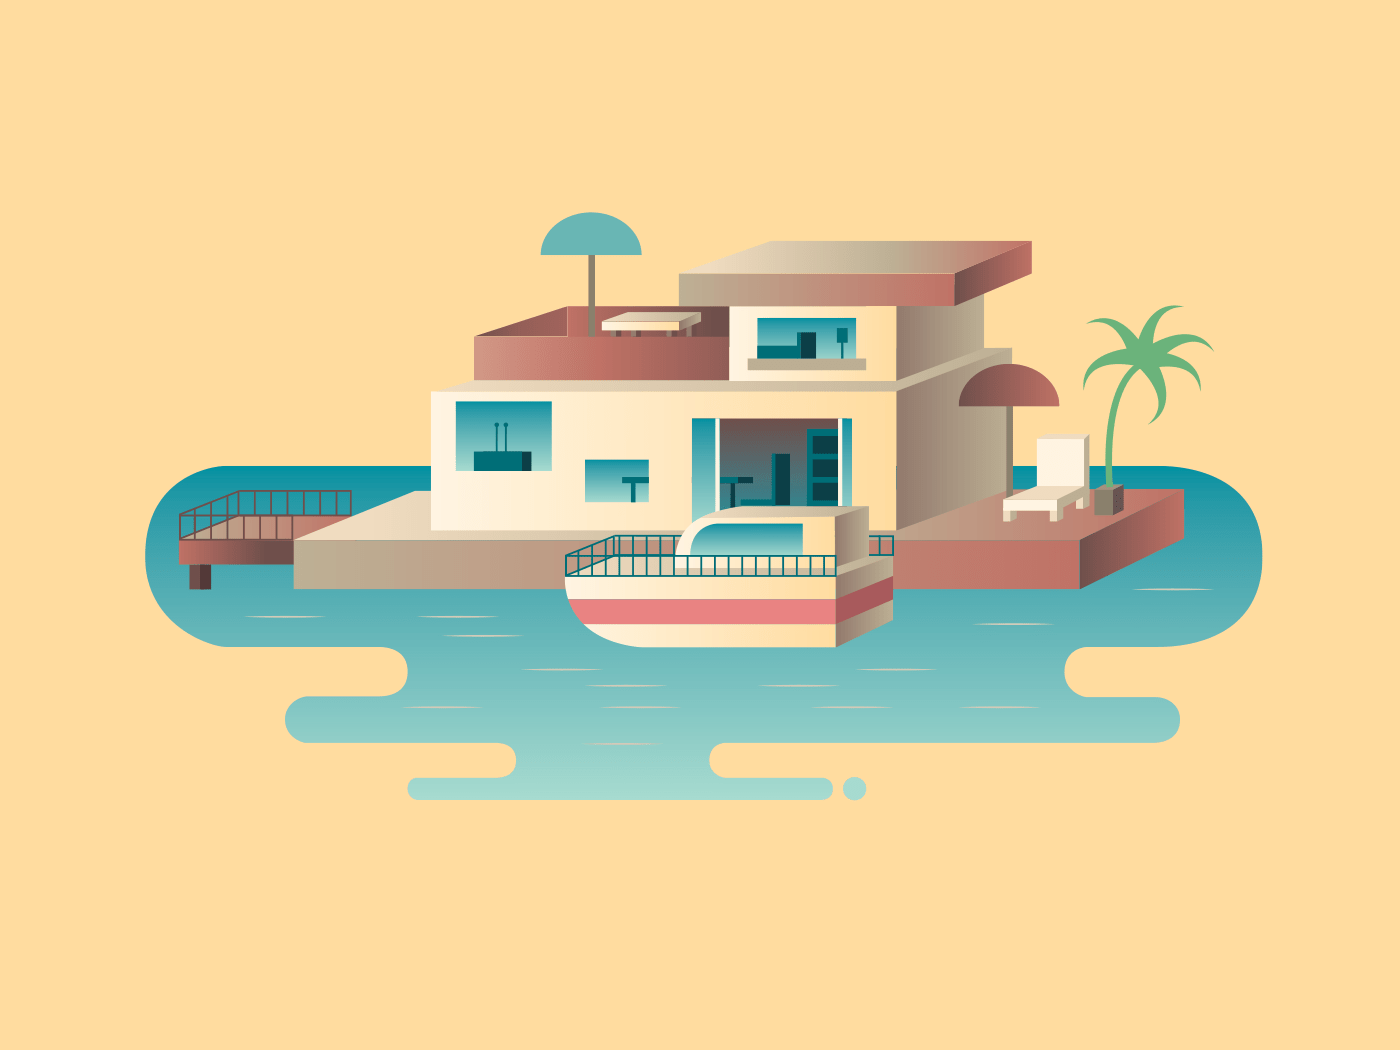 House on water with yacht illustration